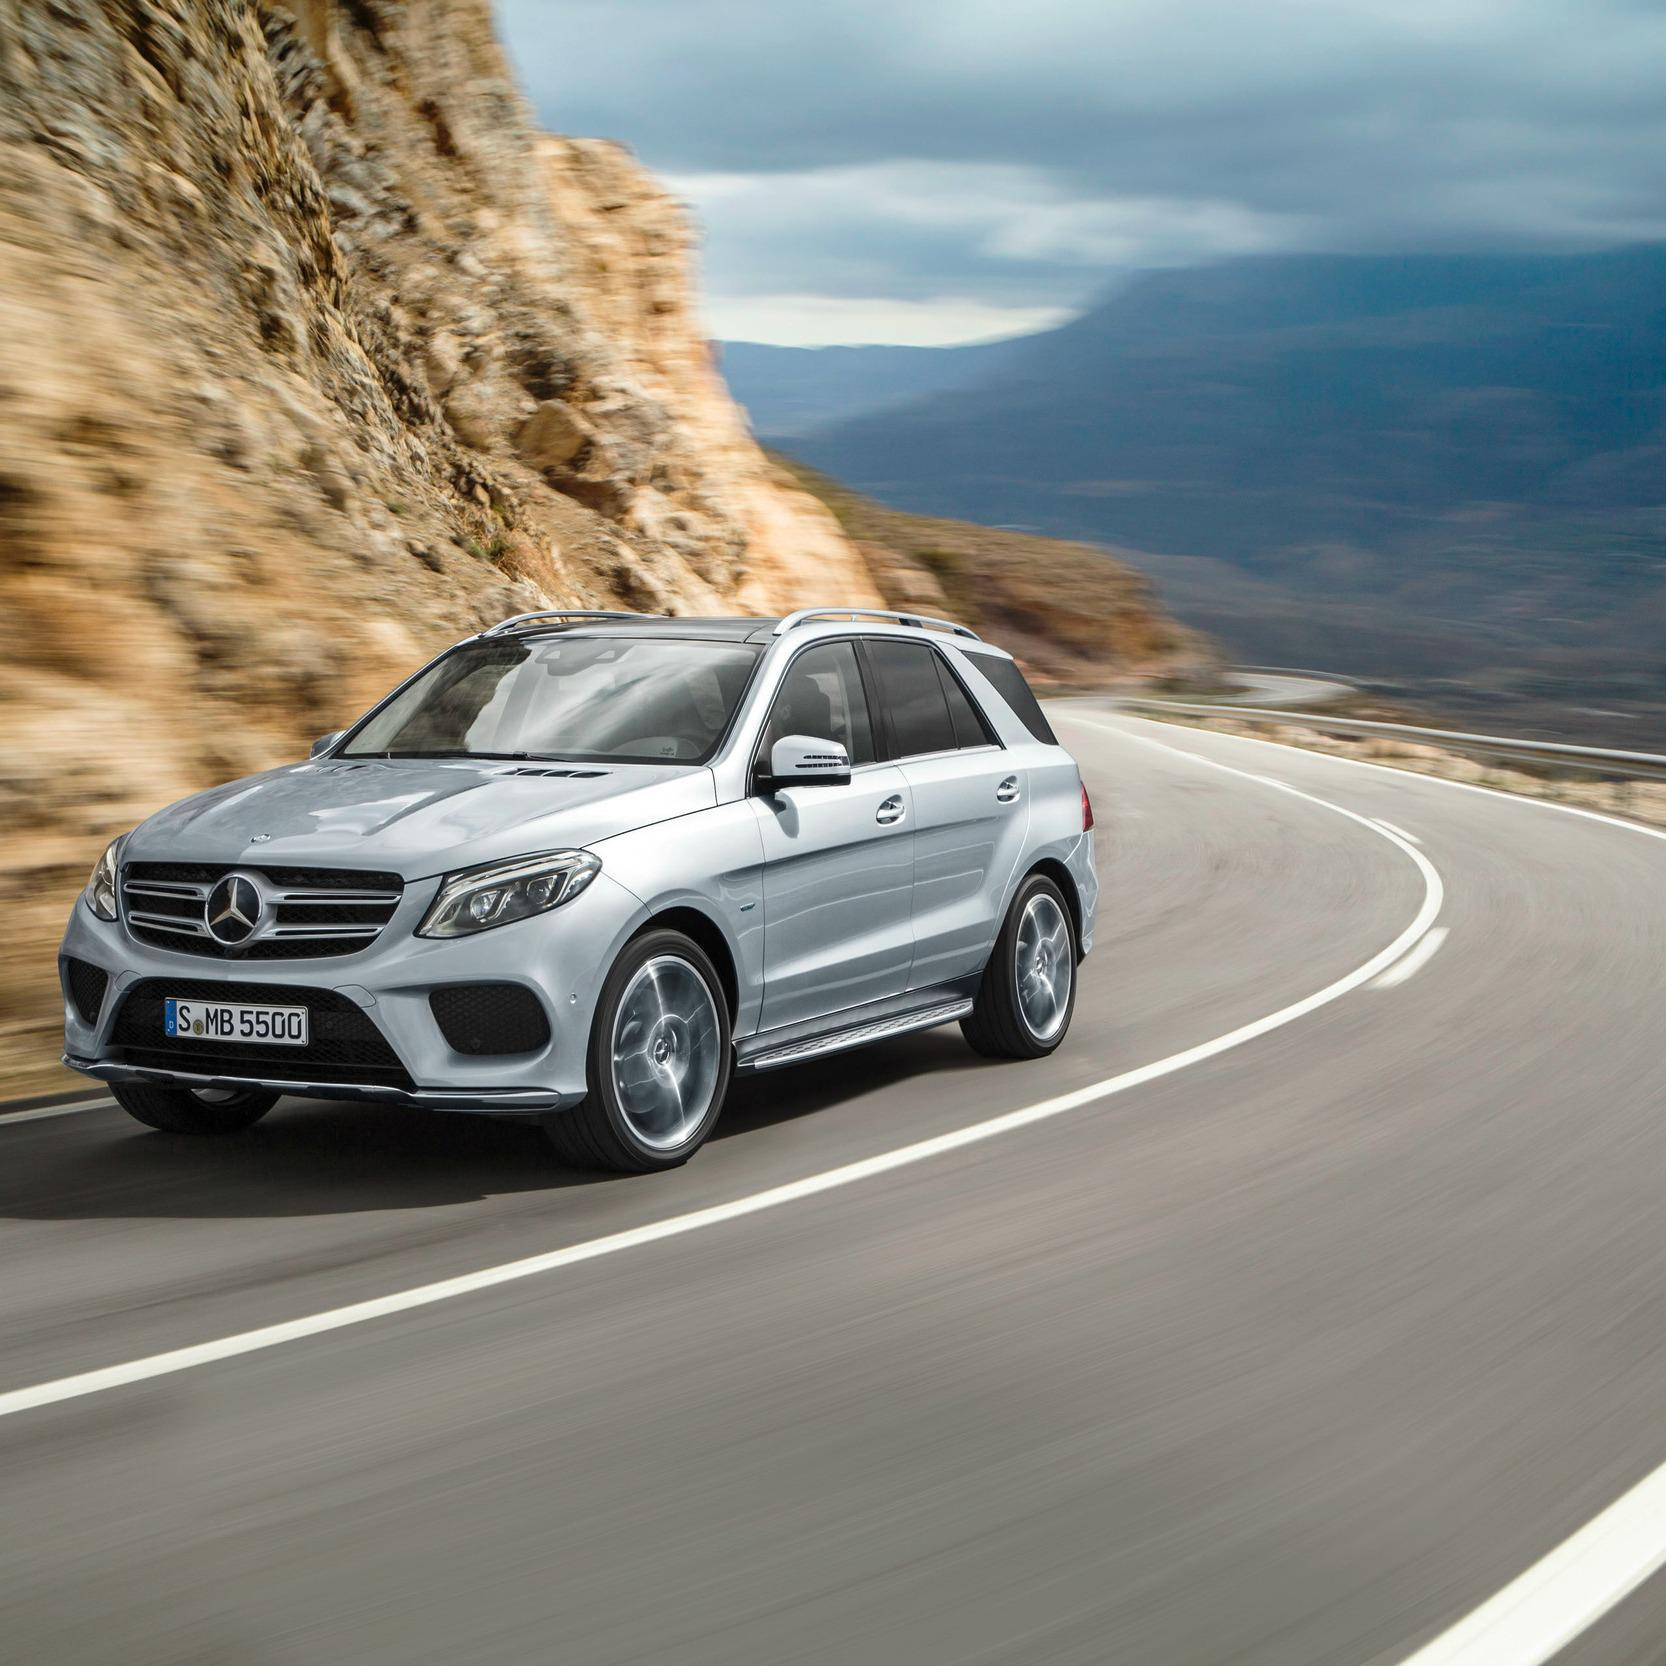 Mercedes benz on track to launch its gle suv in india on for Mercedes benz suv india